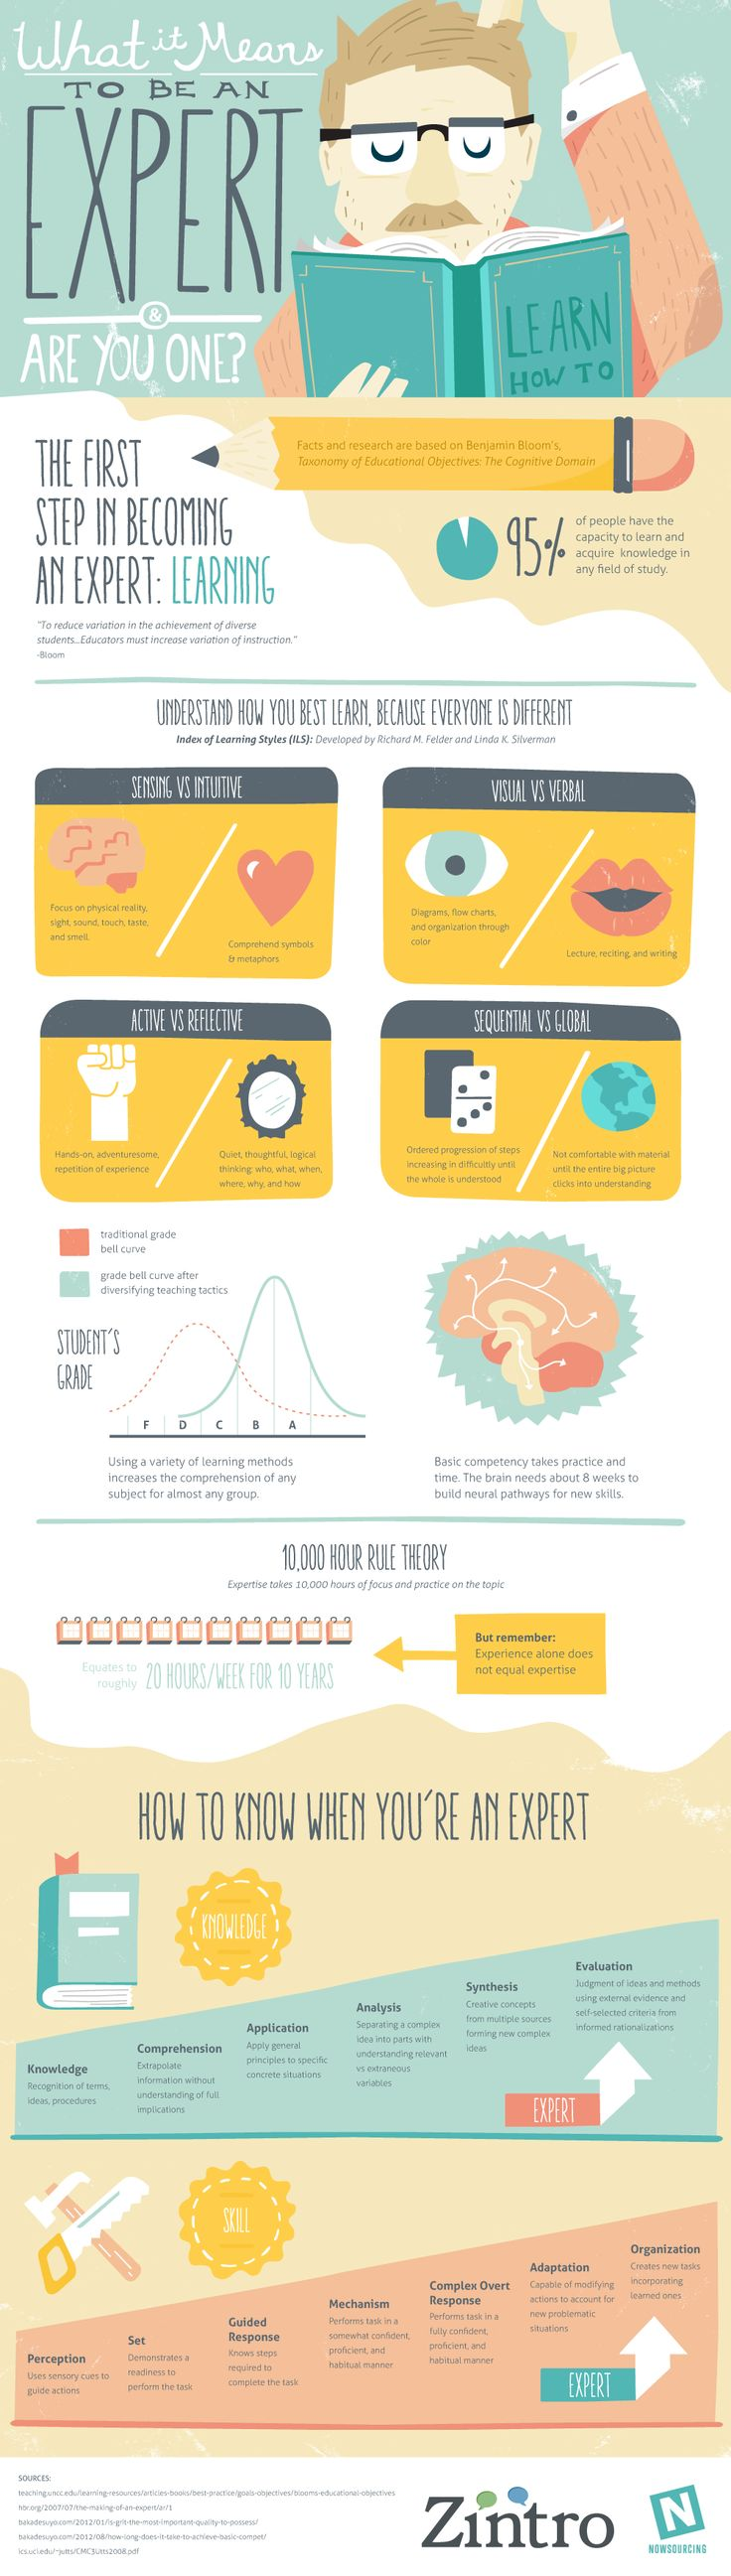 Are You a Real Expert or a Faker? [INFOGRAPHIC] - http://dashburst.com/infographic/expert-or-faker/